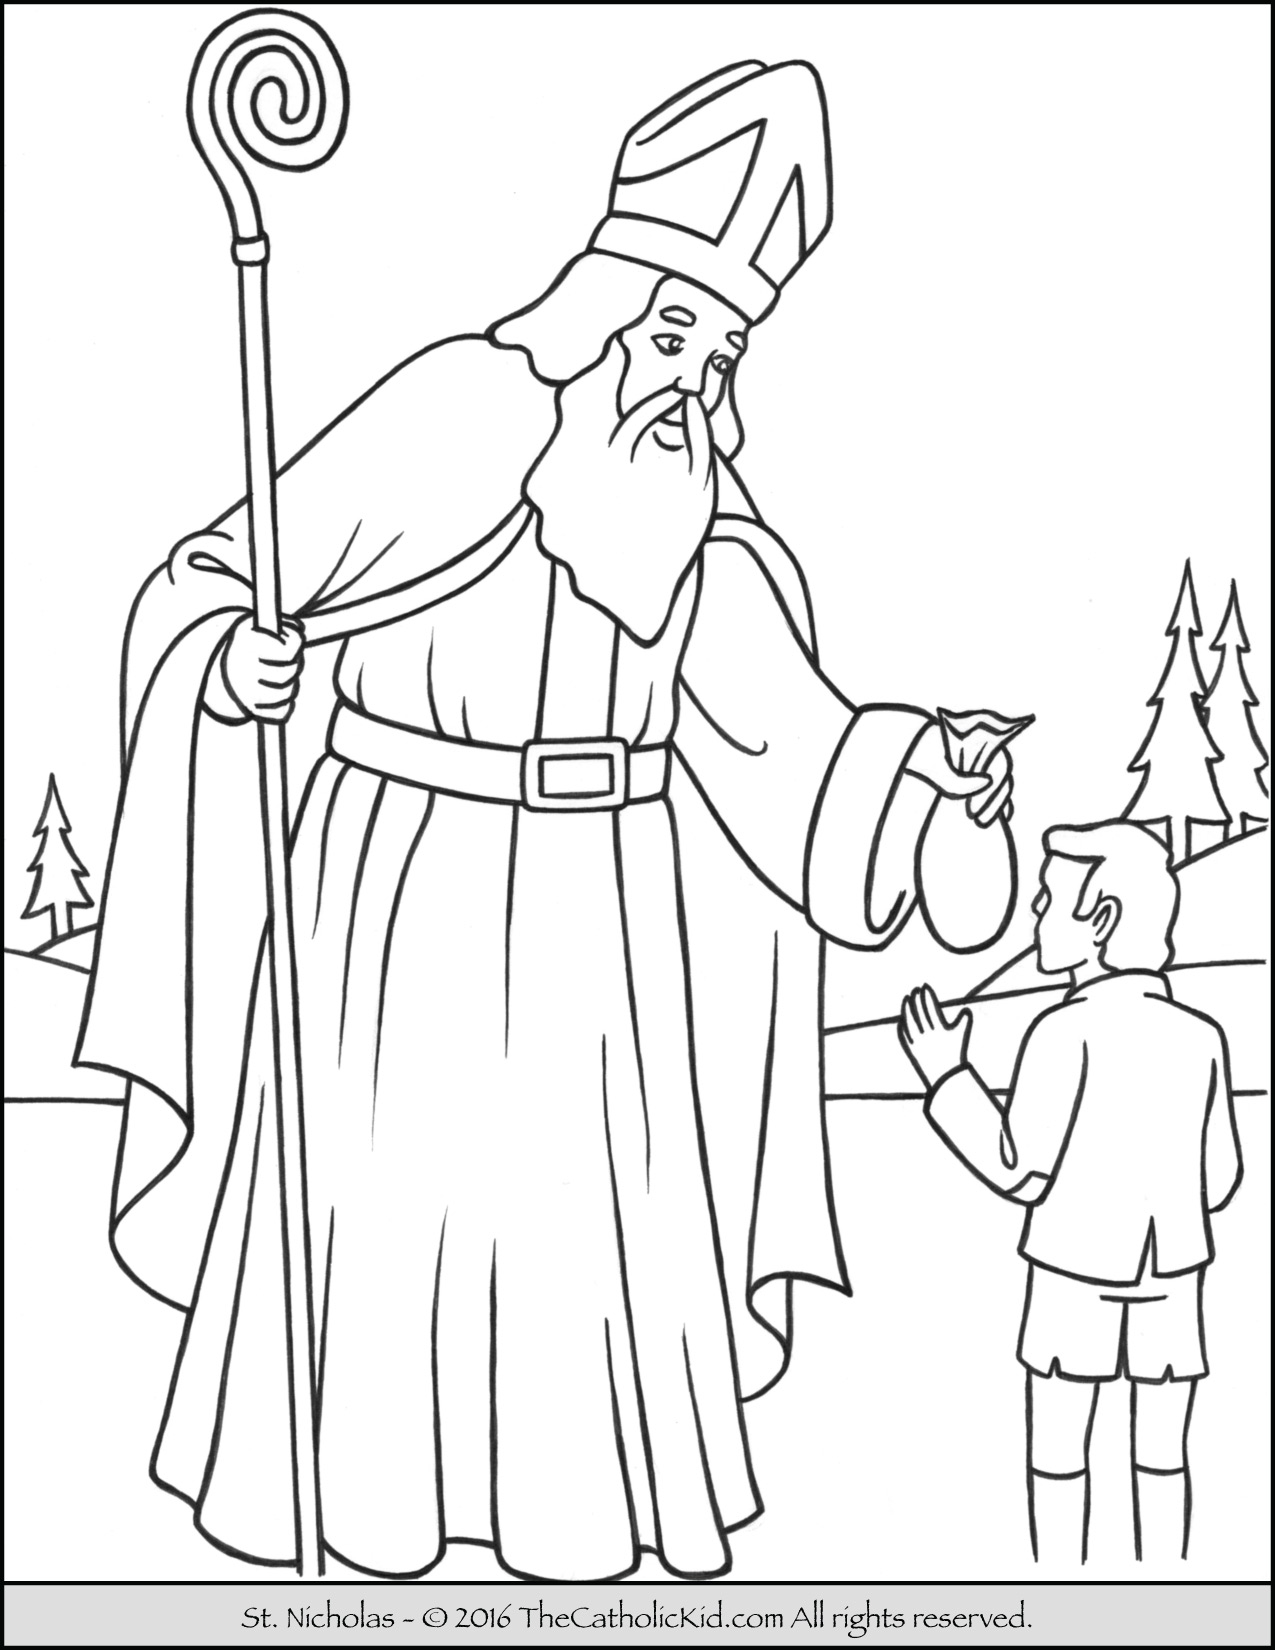 saints coloring pages orthodox christian education st george skit coloring page saints pages coloring